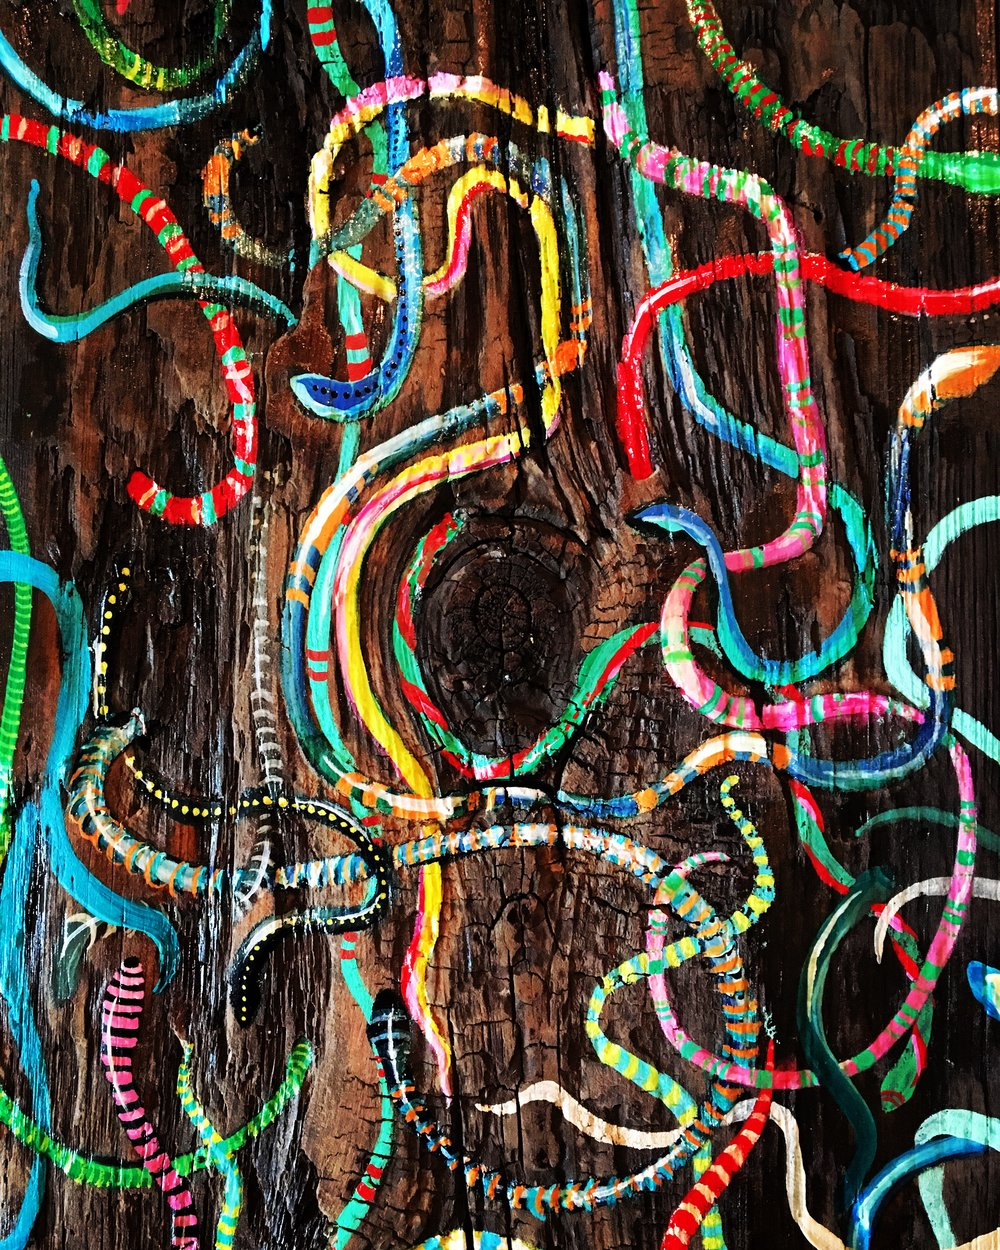 Coming out of the Woodwork ... painting on wood by Colorado artist Crystal Hartman, exhibiting through the holidays at Raider's Ridge, Durango Colorado